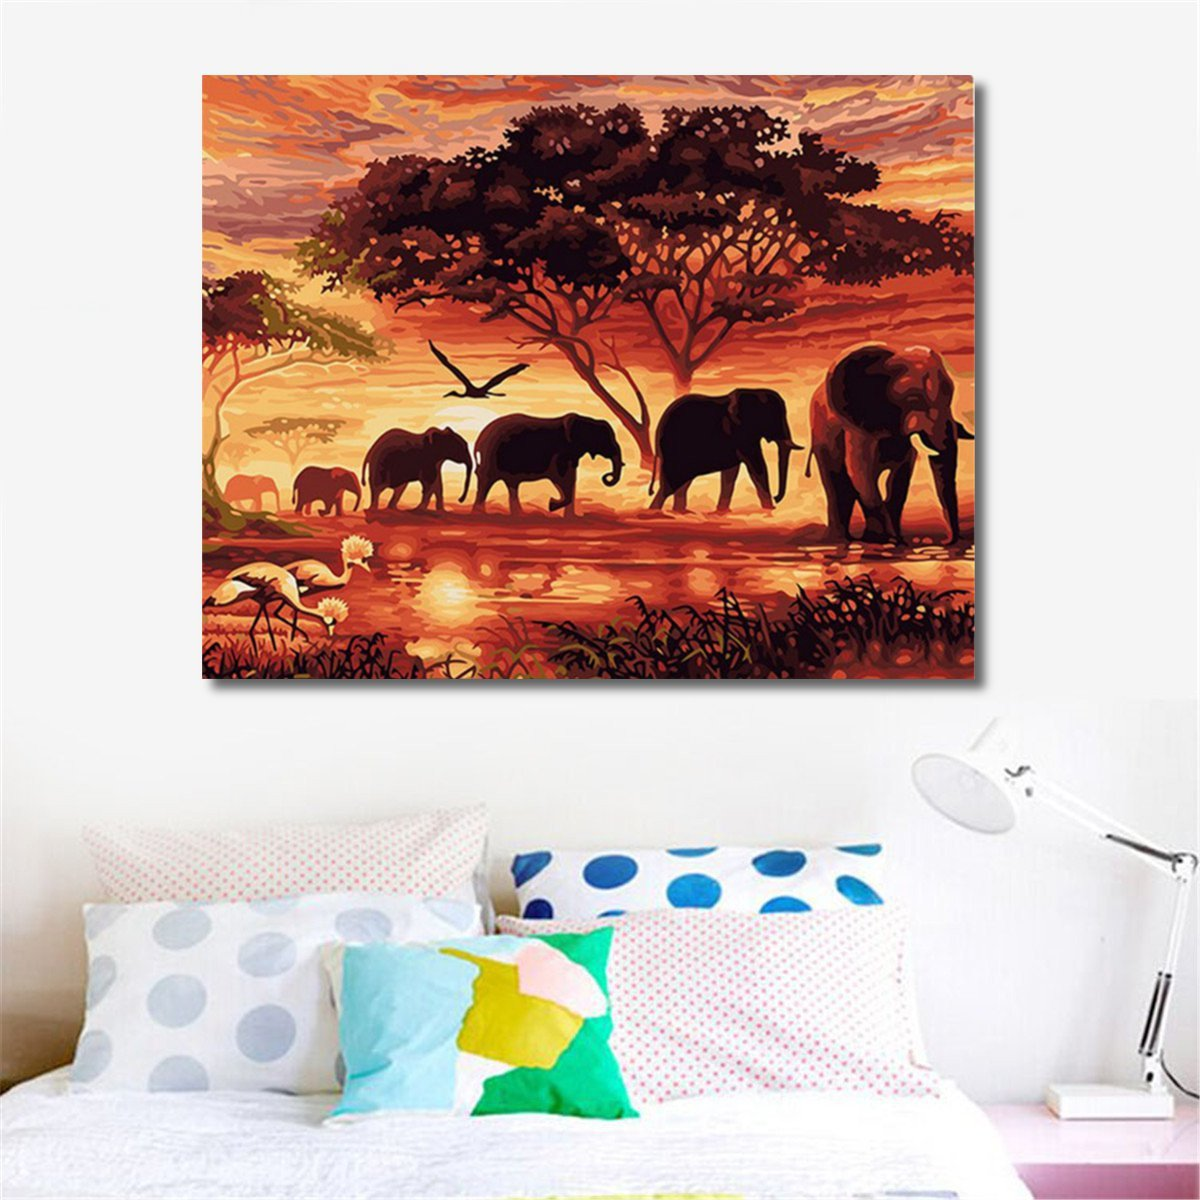 Elephants Sunset Landscape Paint by Numbers Kit